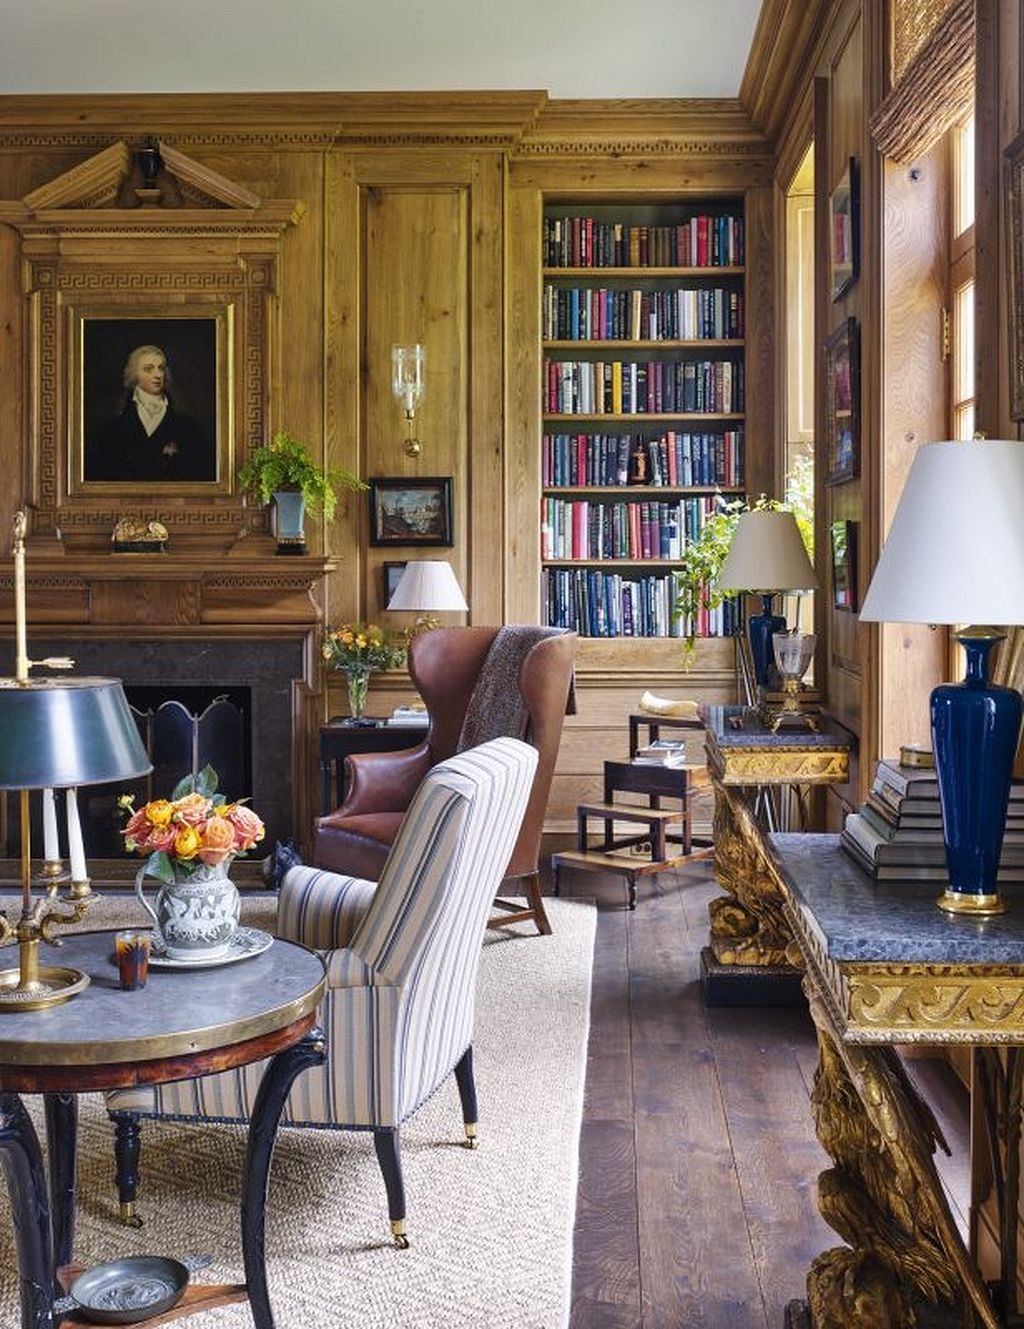 English country home interiors   English Country Home Decor Ideas   eclectic decor  Pinterest